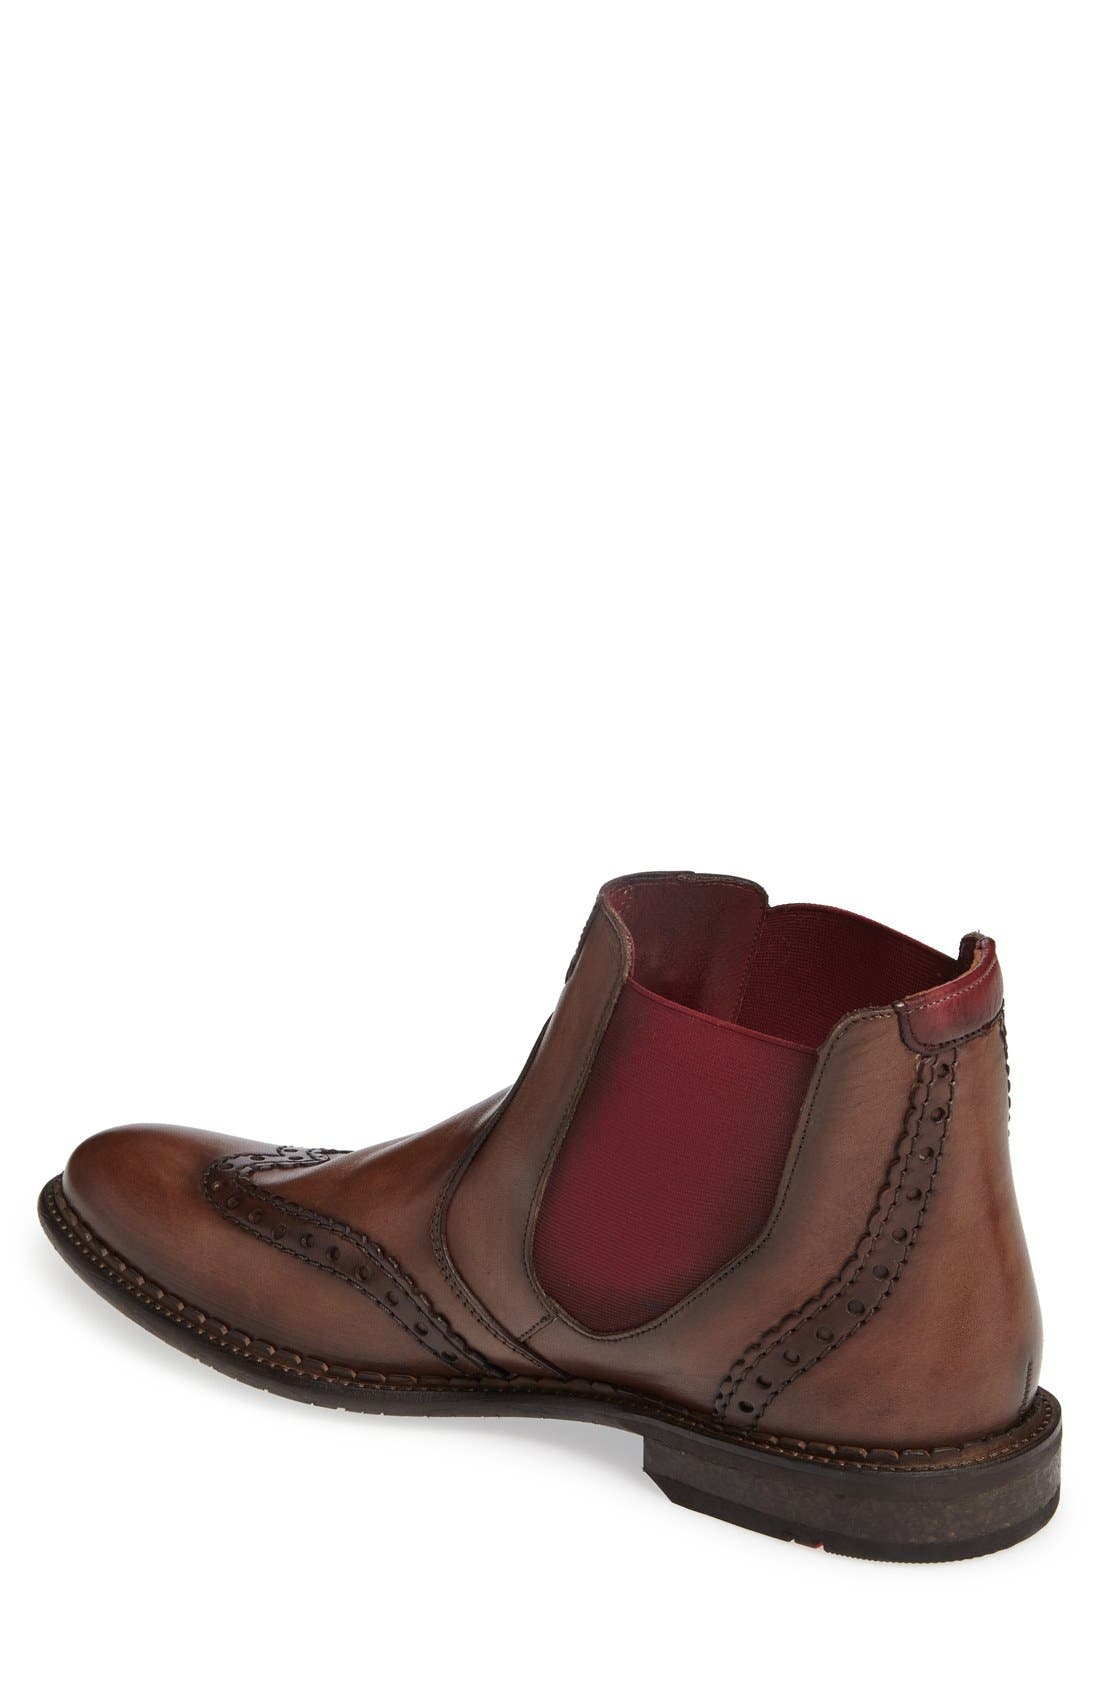 Grenoble Wingtip Chelsea Boot,                             Alternate thumbnail 2, color,                             200